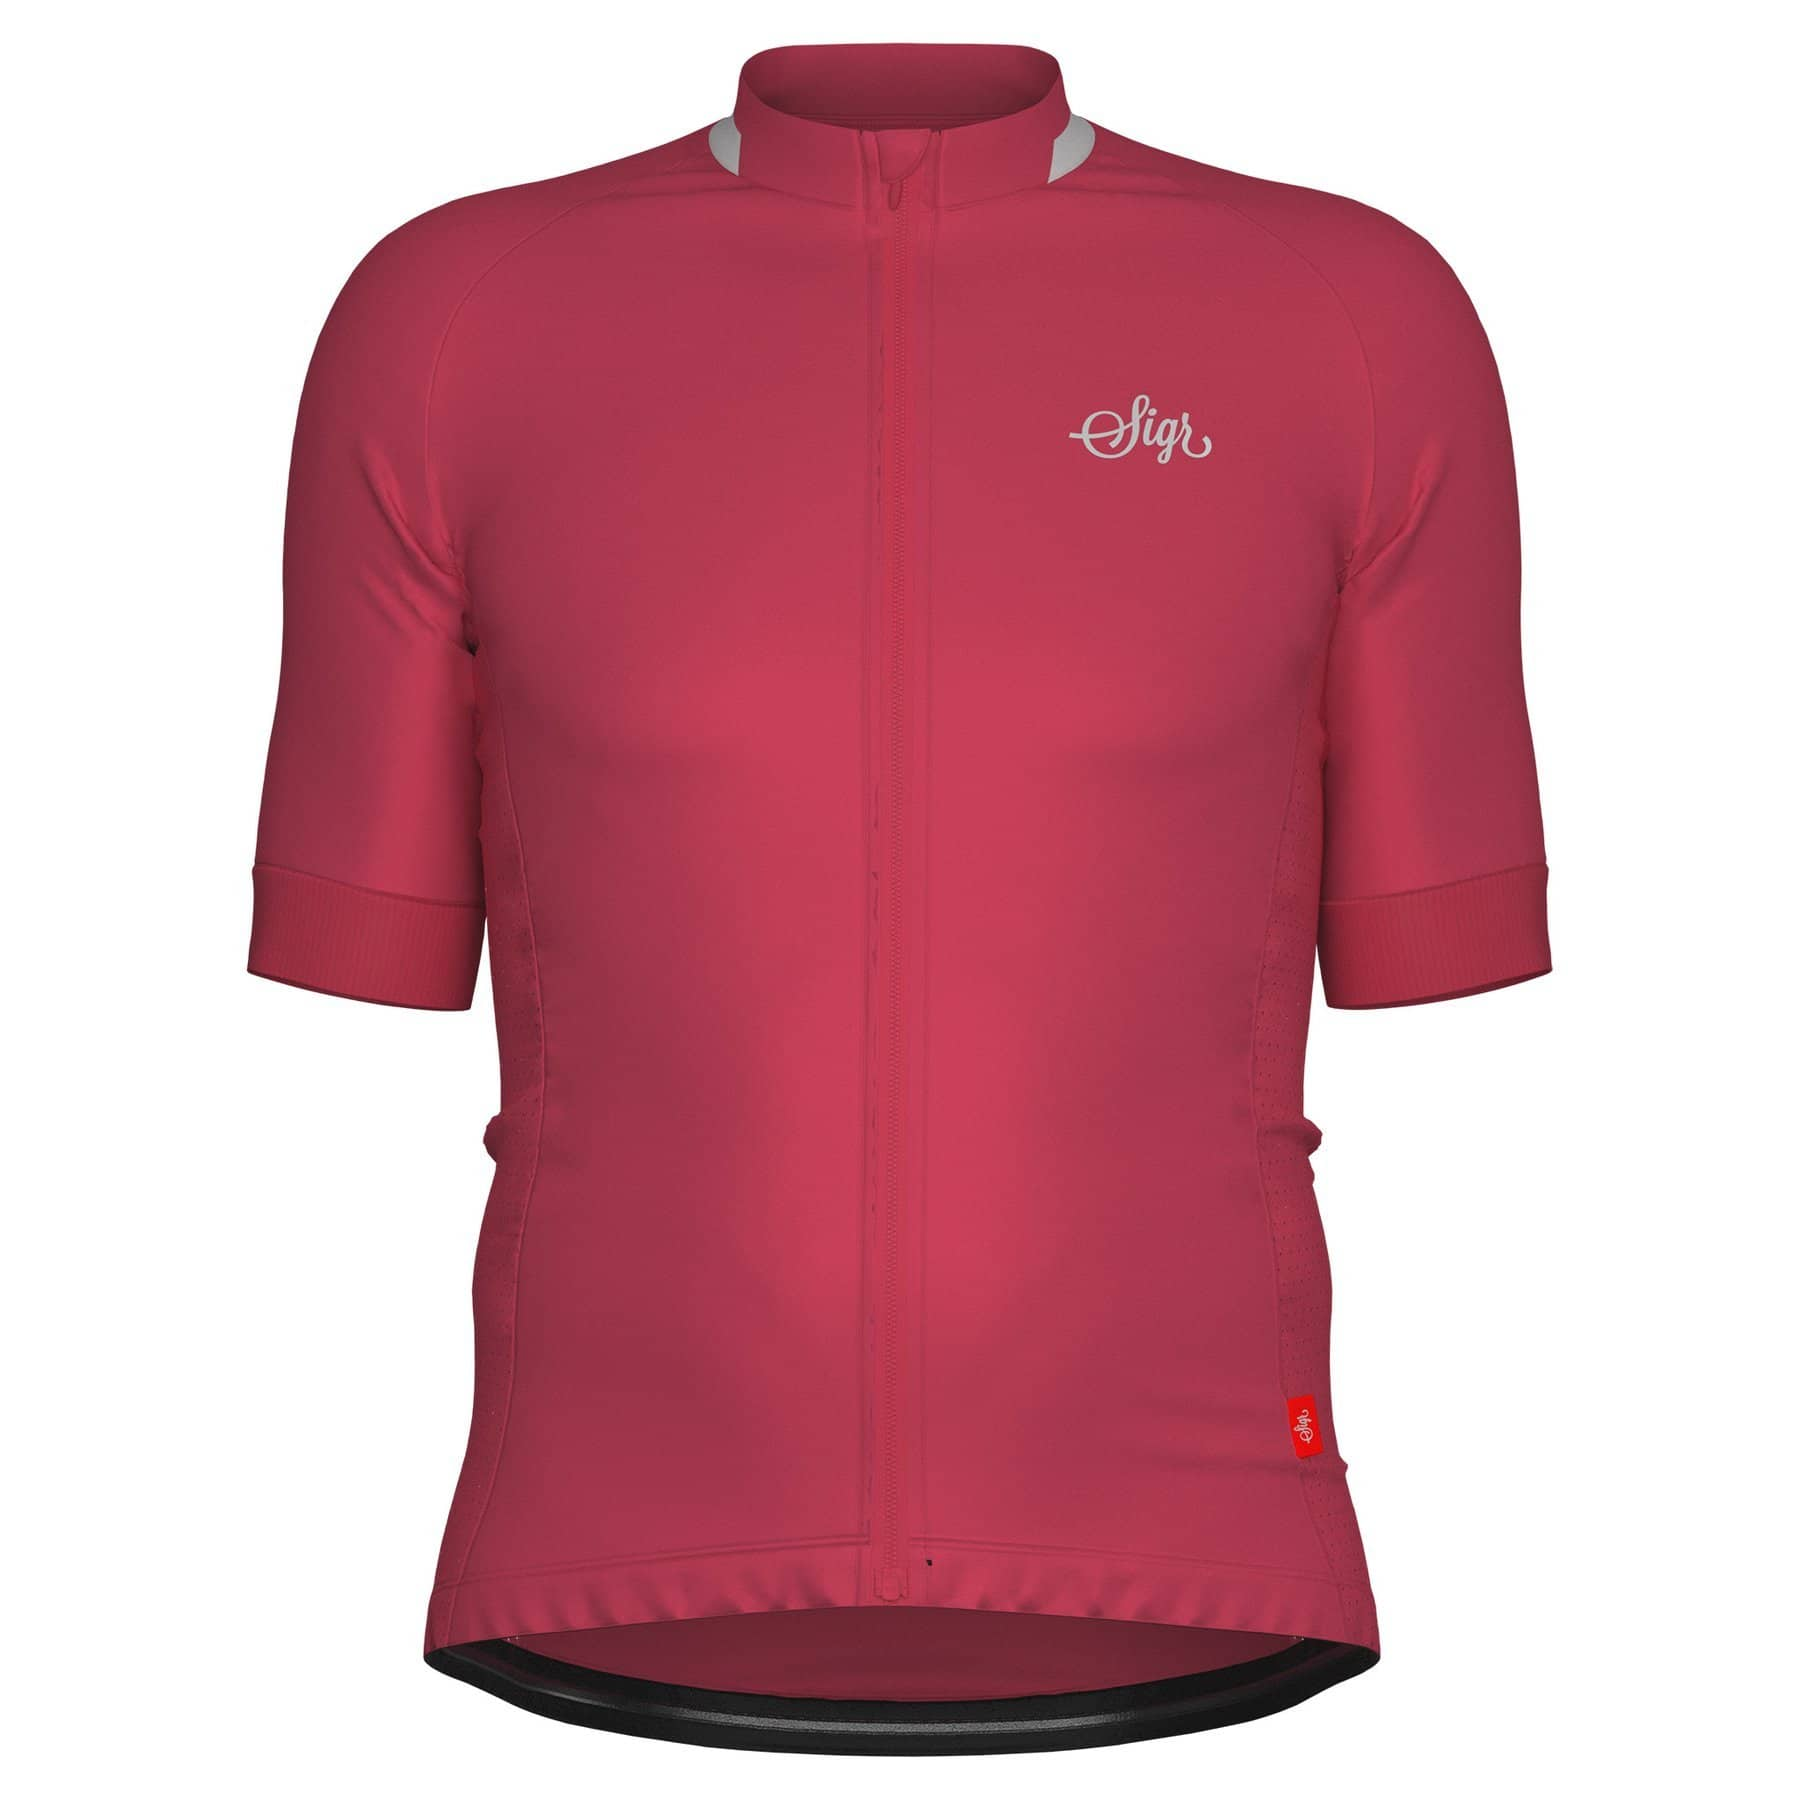 SIGR 'Luktärt' Pink Cycling Jersey for Men